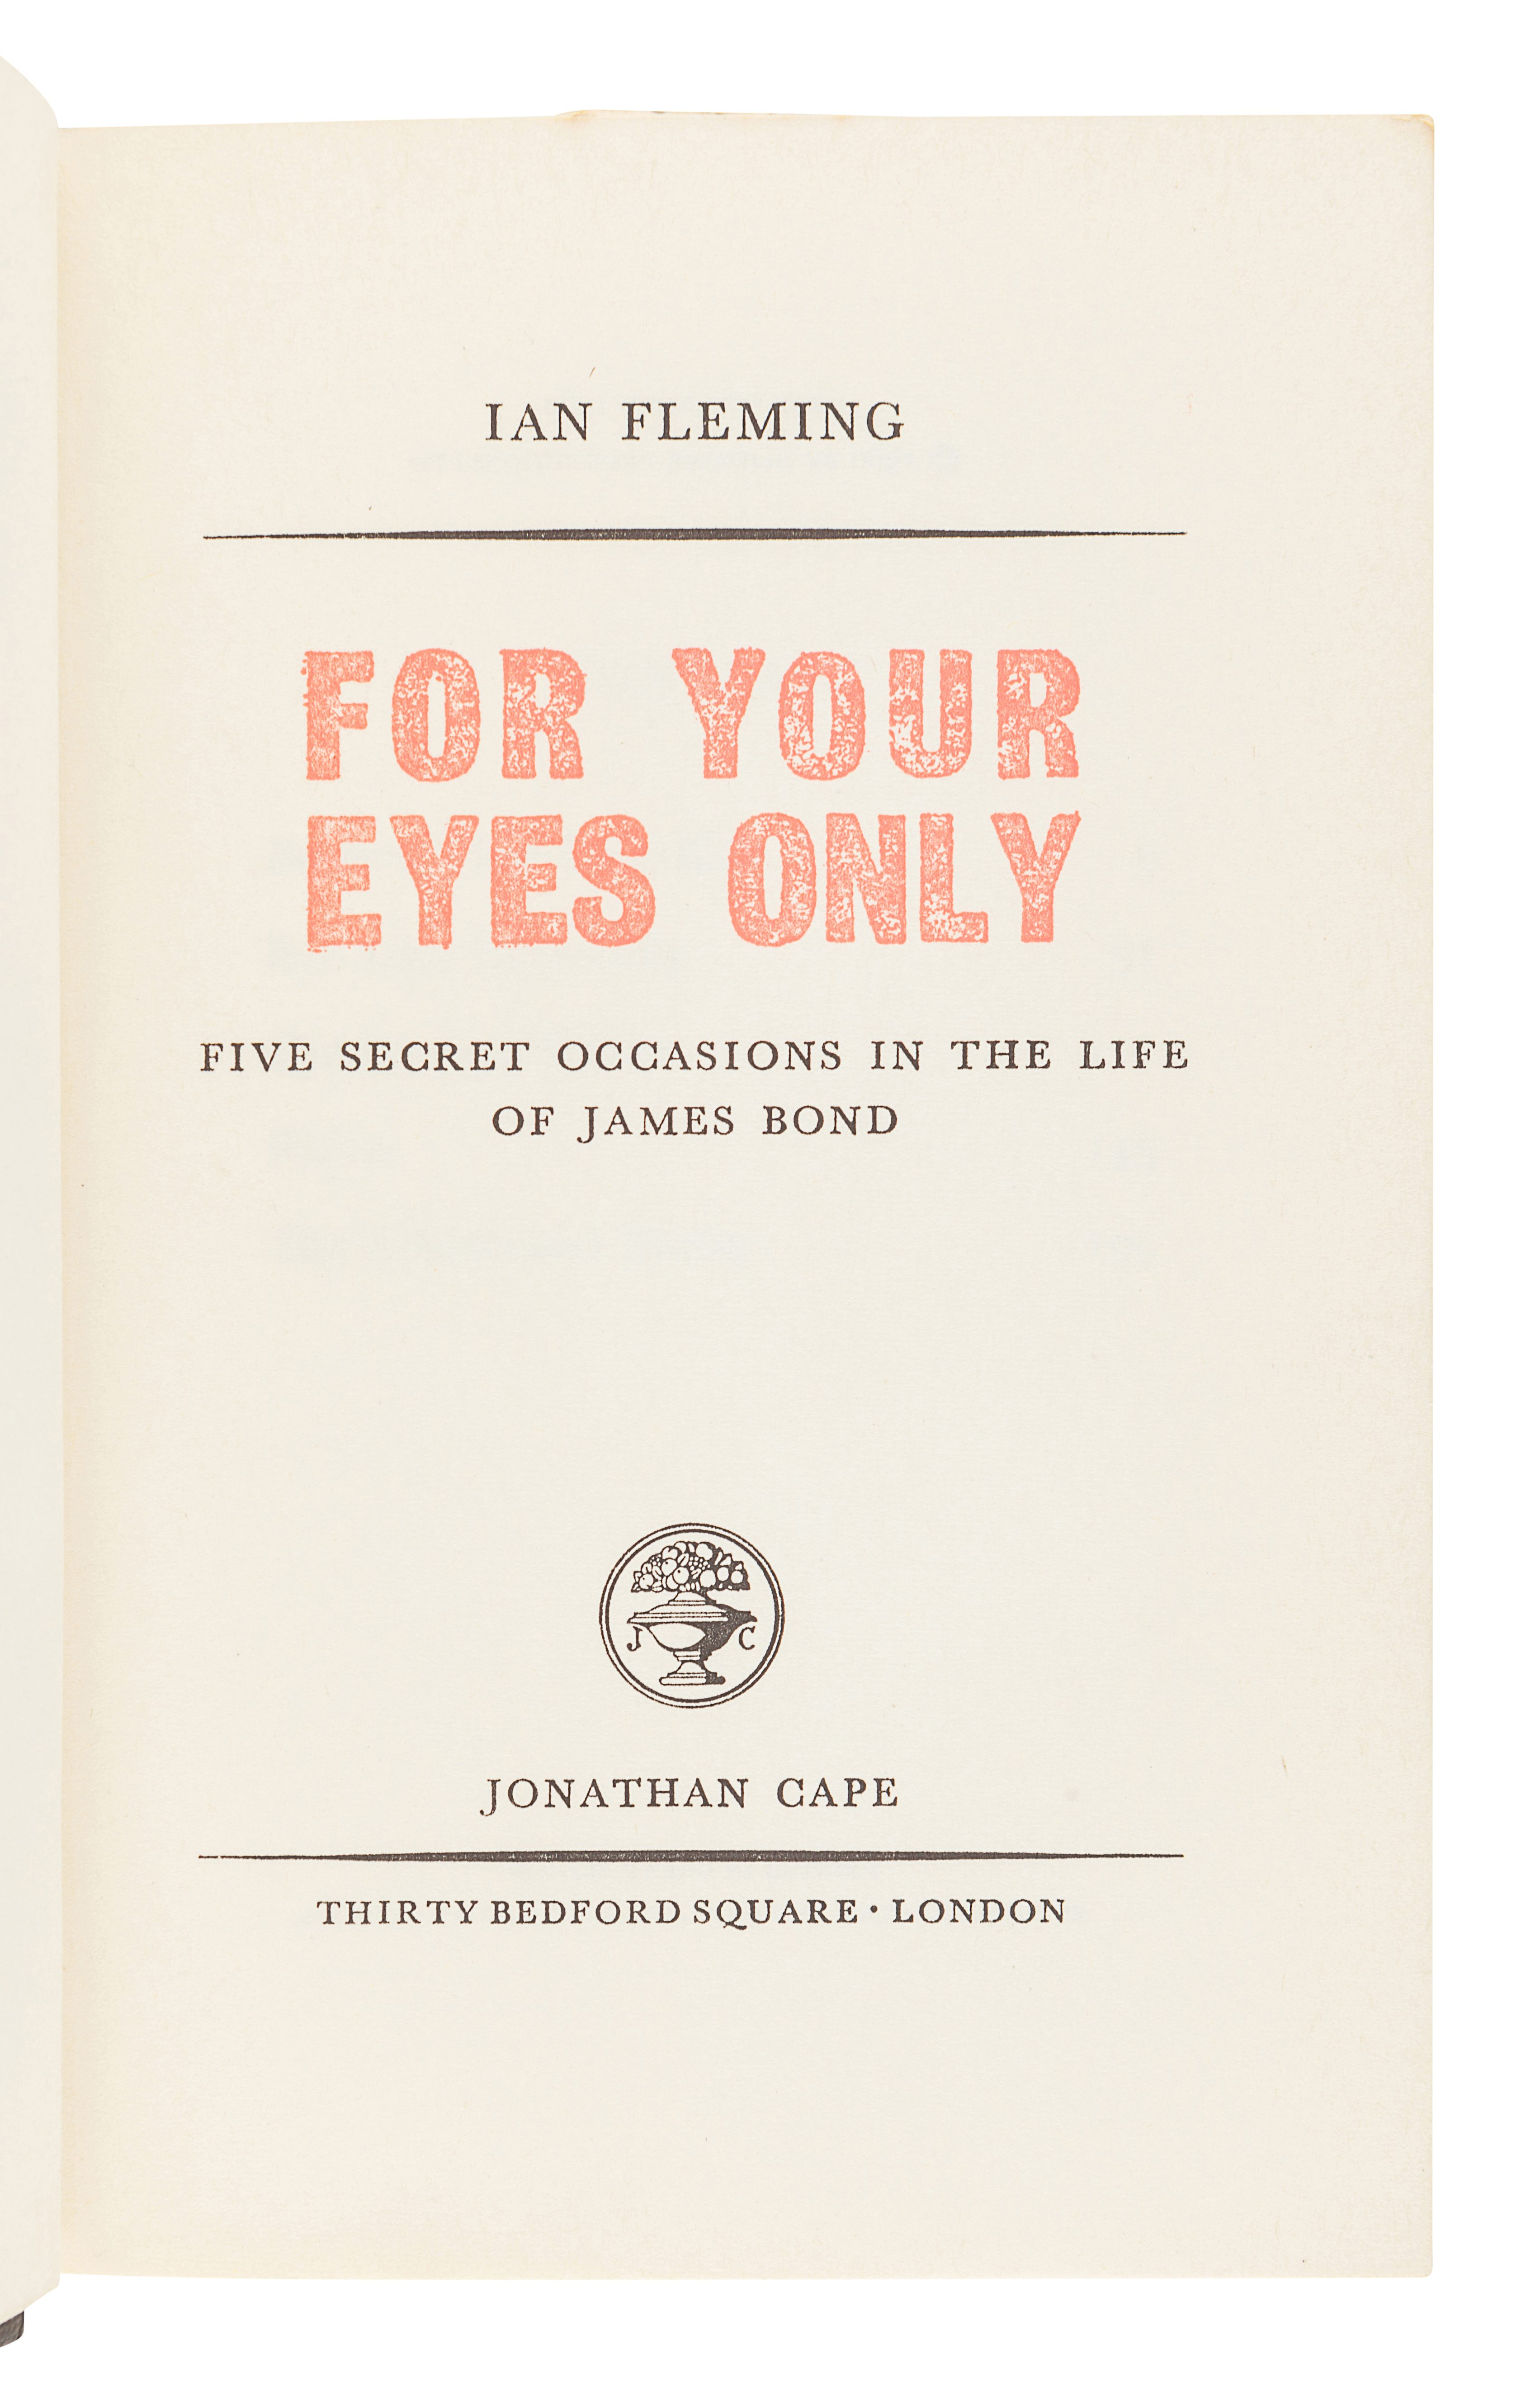 FLEMING, Ian (1908-1964). For Your Eyes Only. London: Jonathan Cape, 1960. - Image 2 of 3